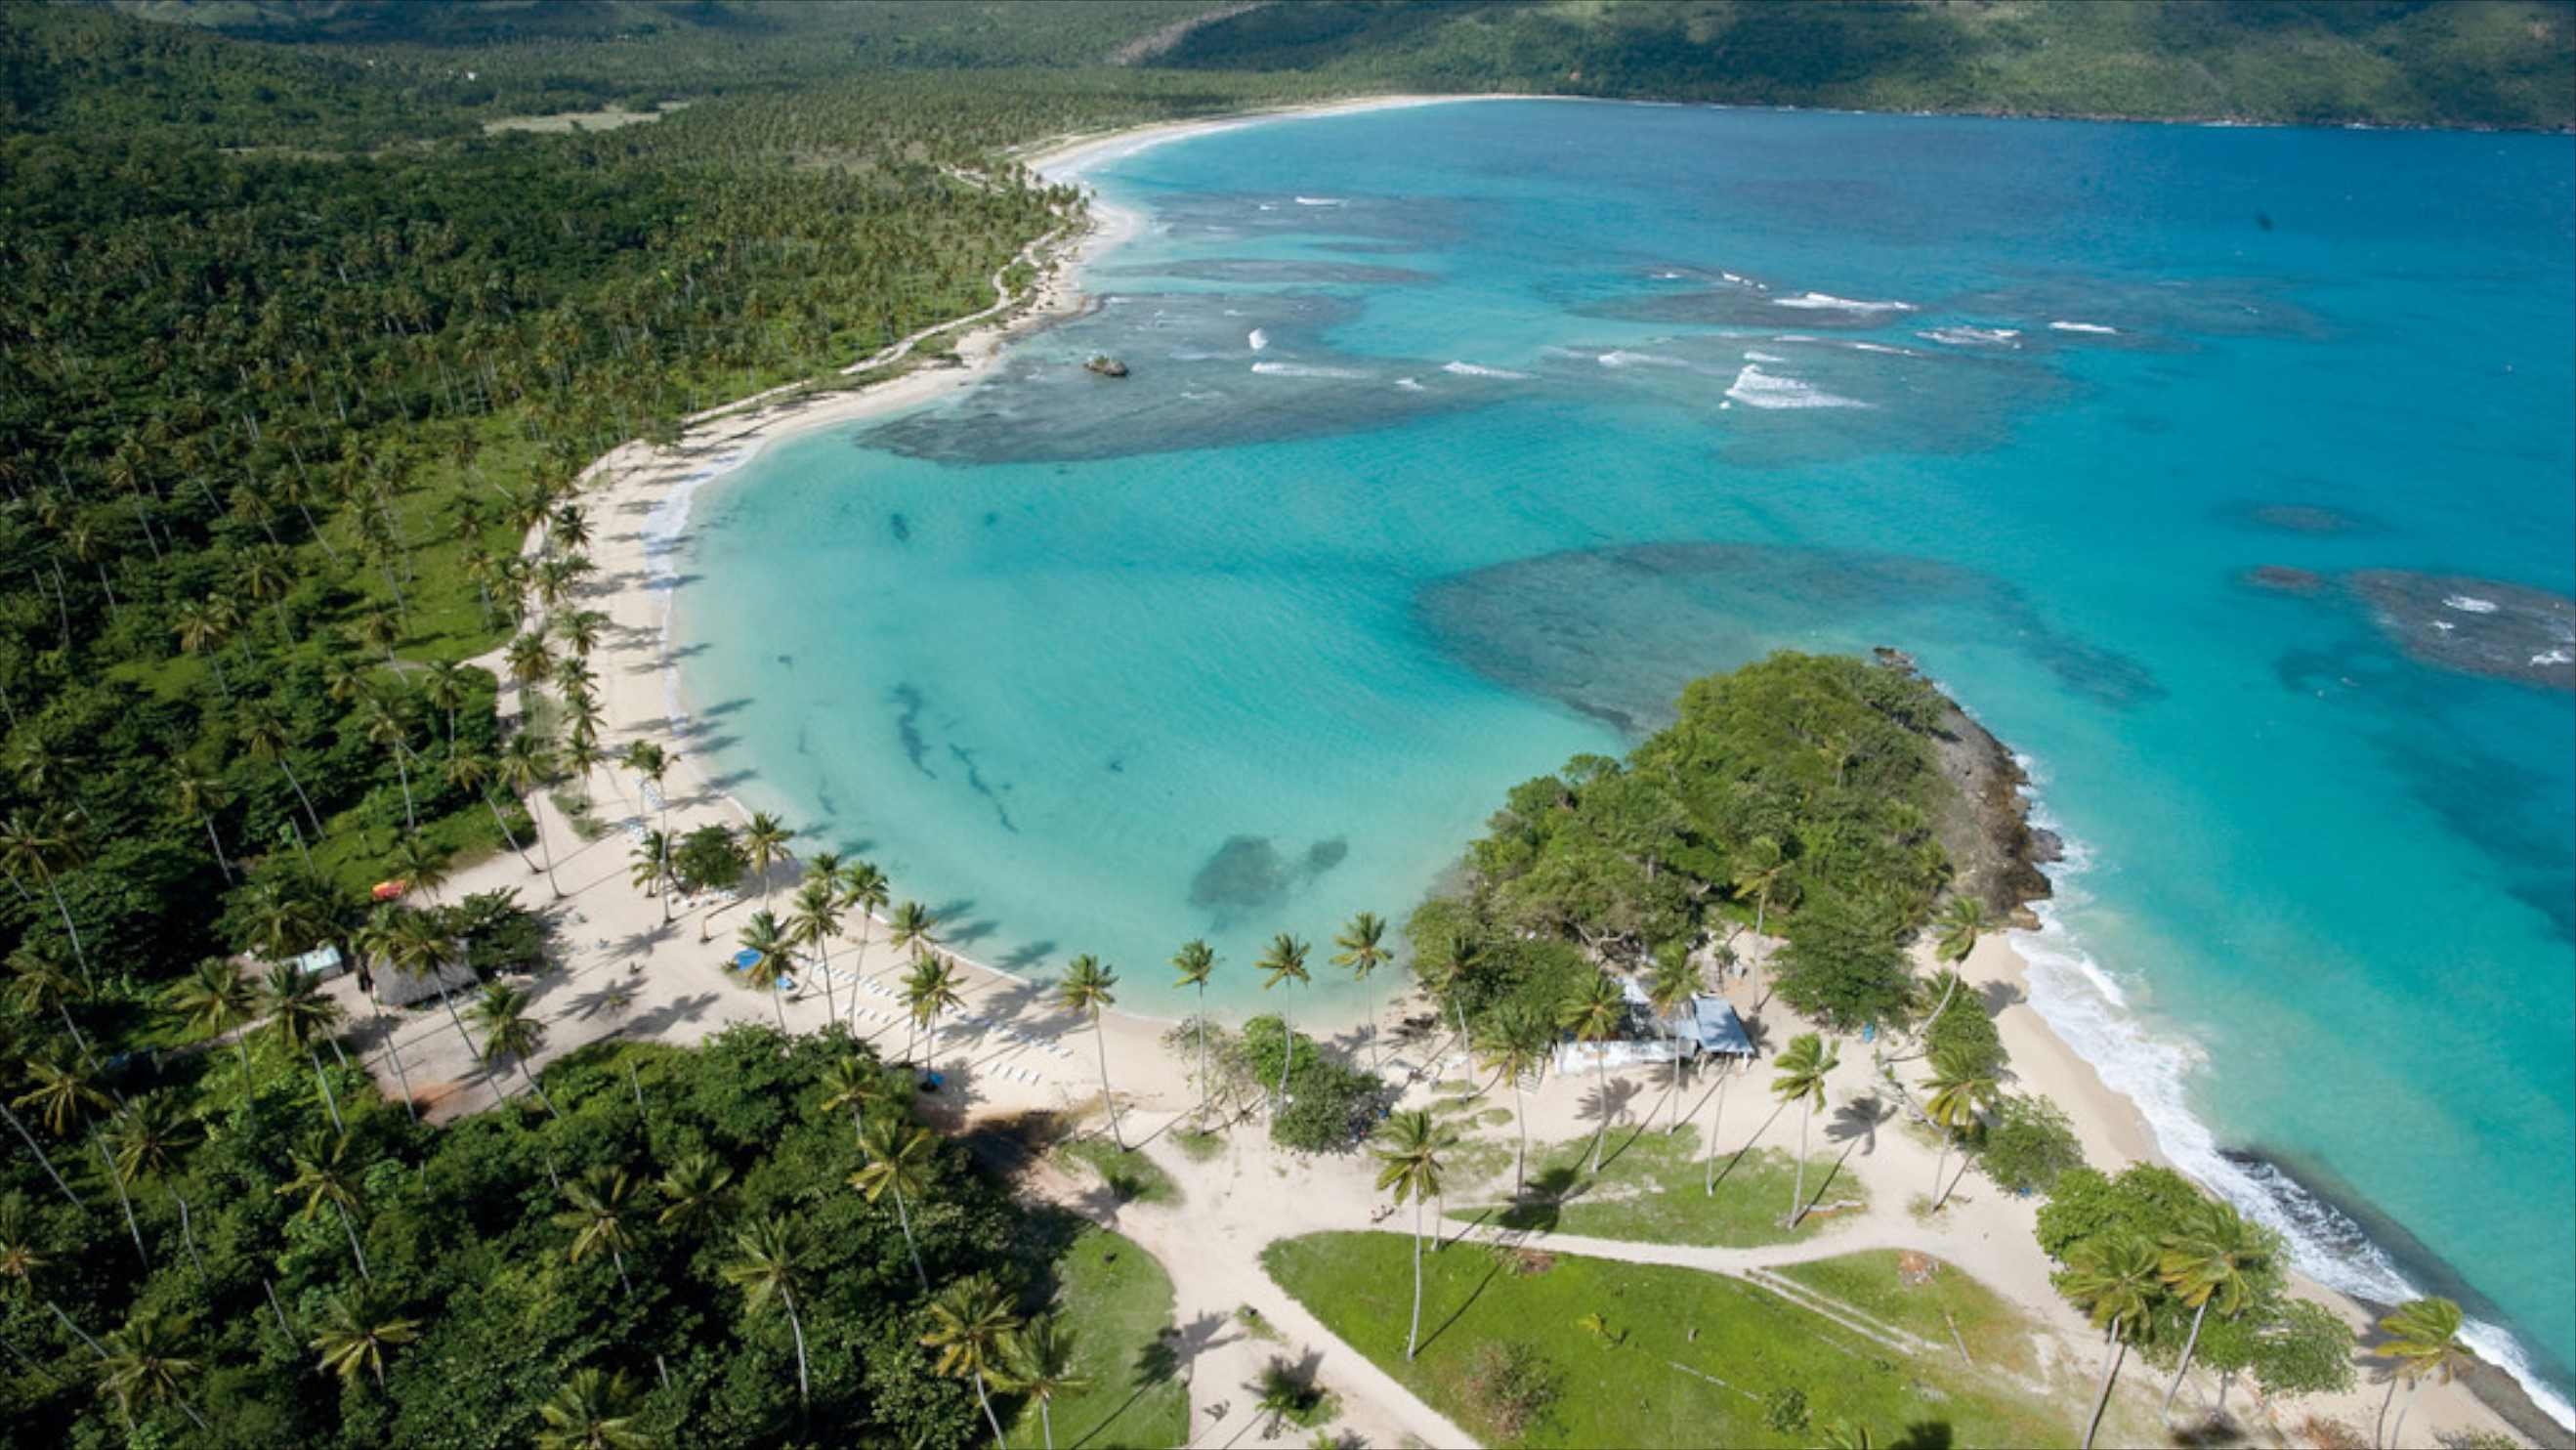 Ca 284 Cheap Flights To Samana Get Tickets Now Expedia Ca